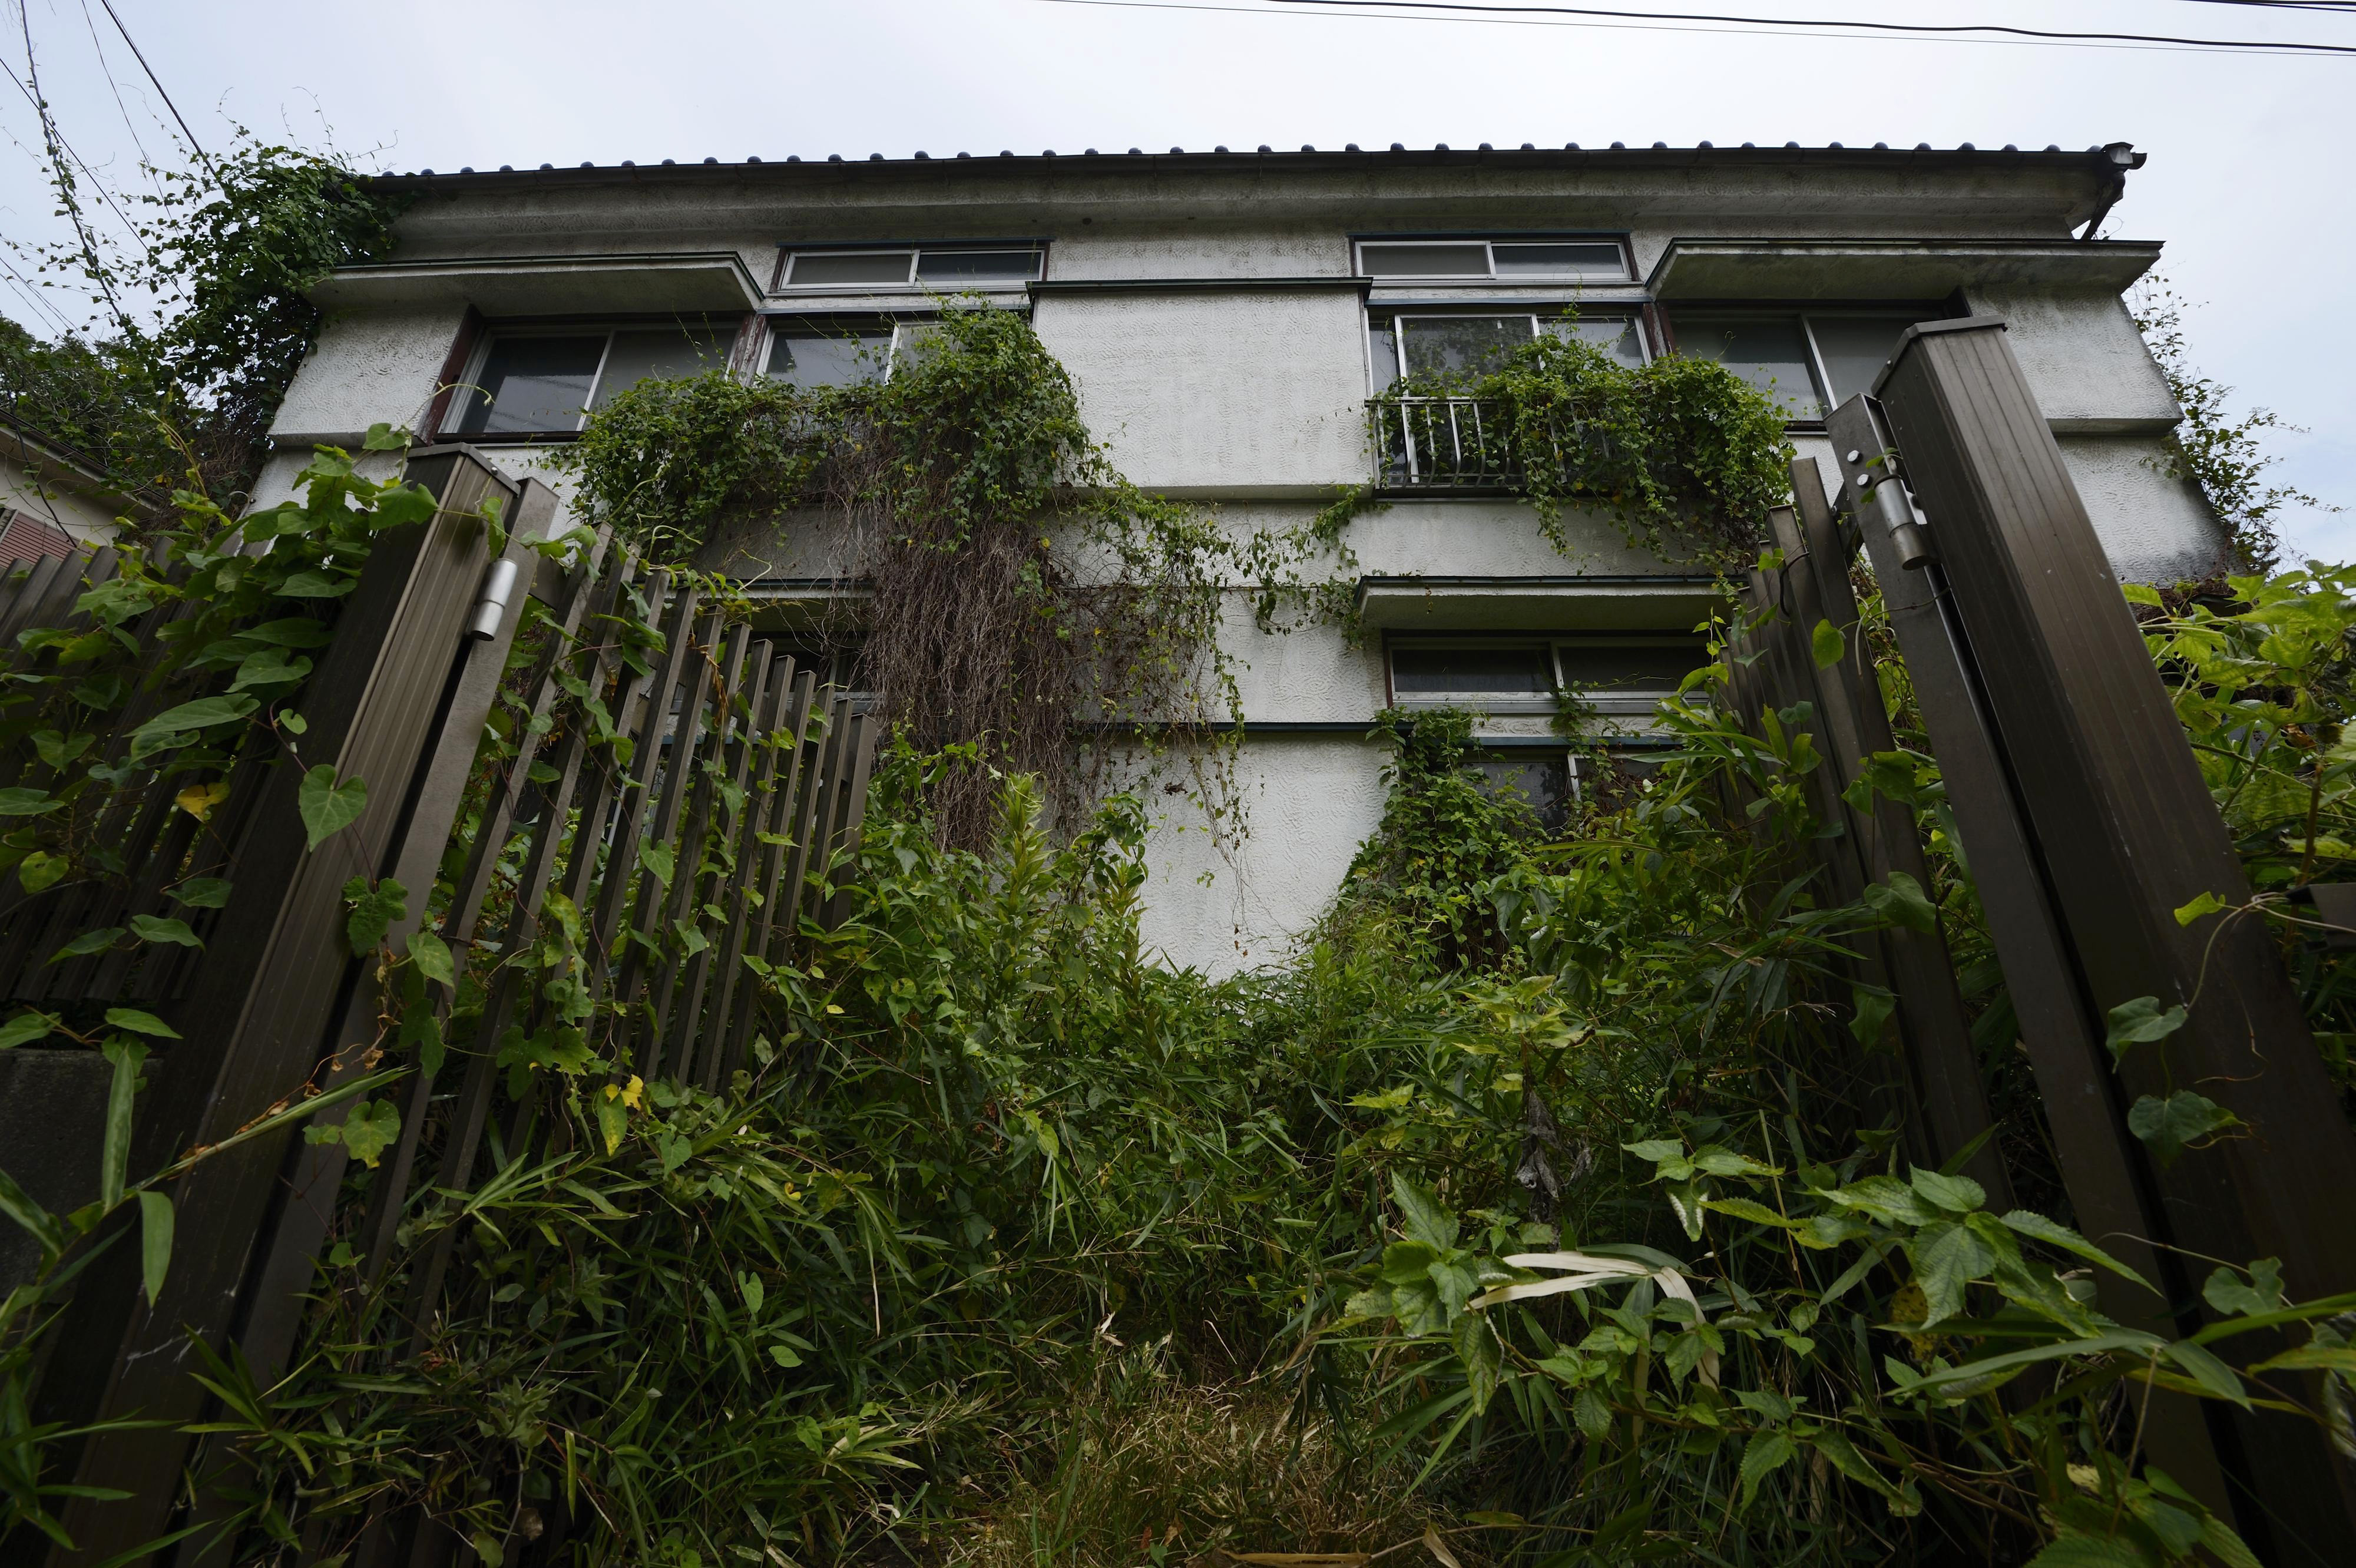 Prefectures like Hyogo — and even cities like Kyoto and Nara — are taking steps to reduce the number of vacant houses there, including through financial assistance. | BLOOMBERG